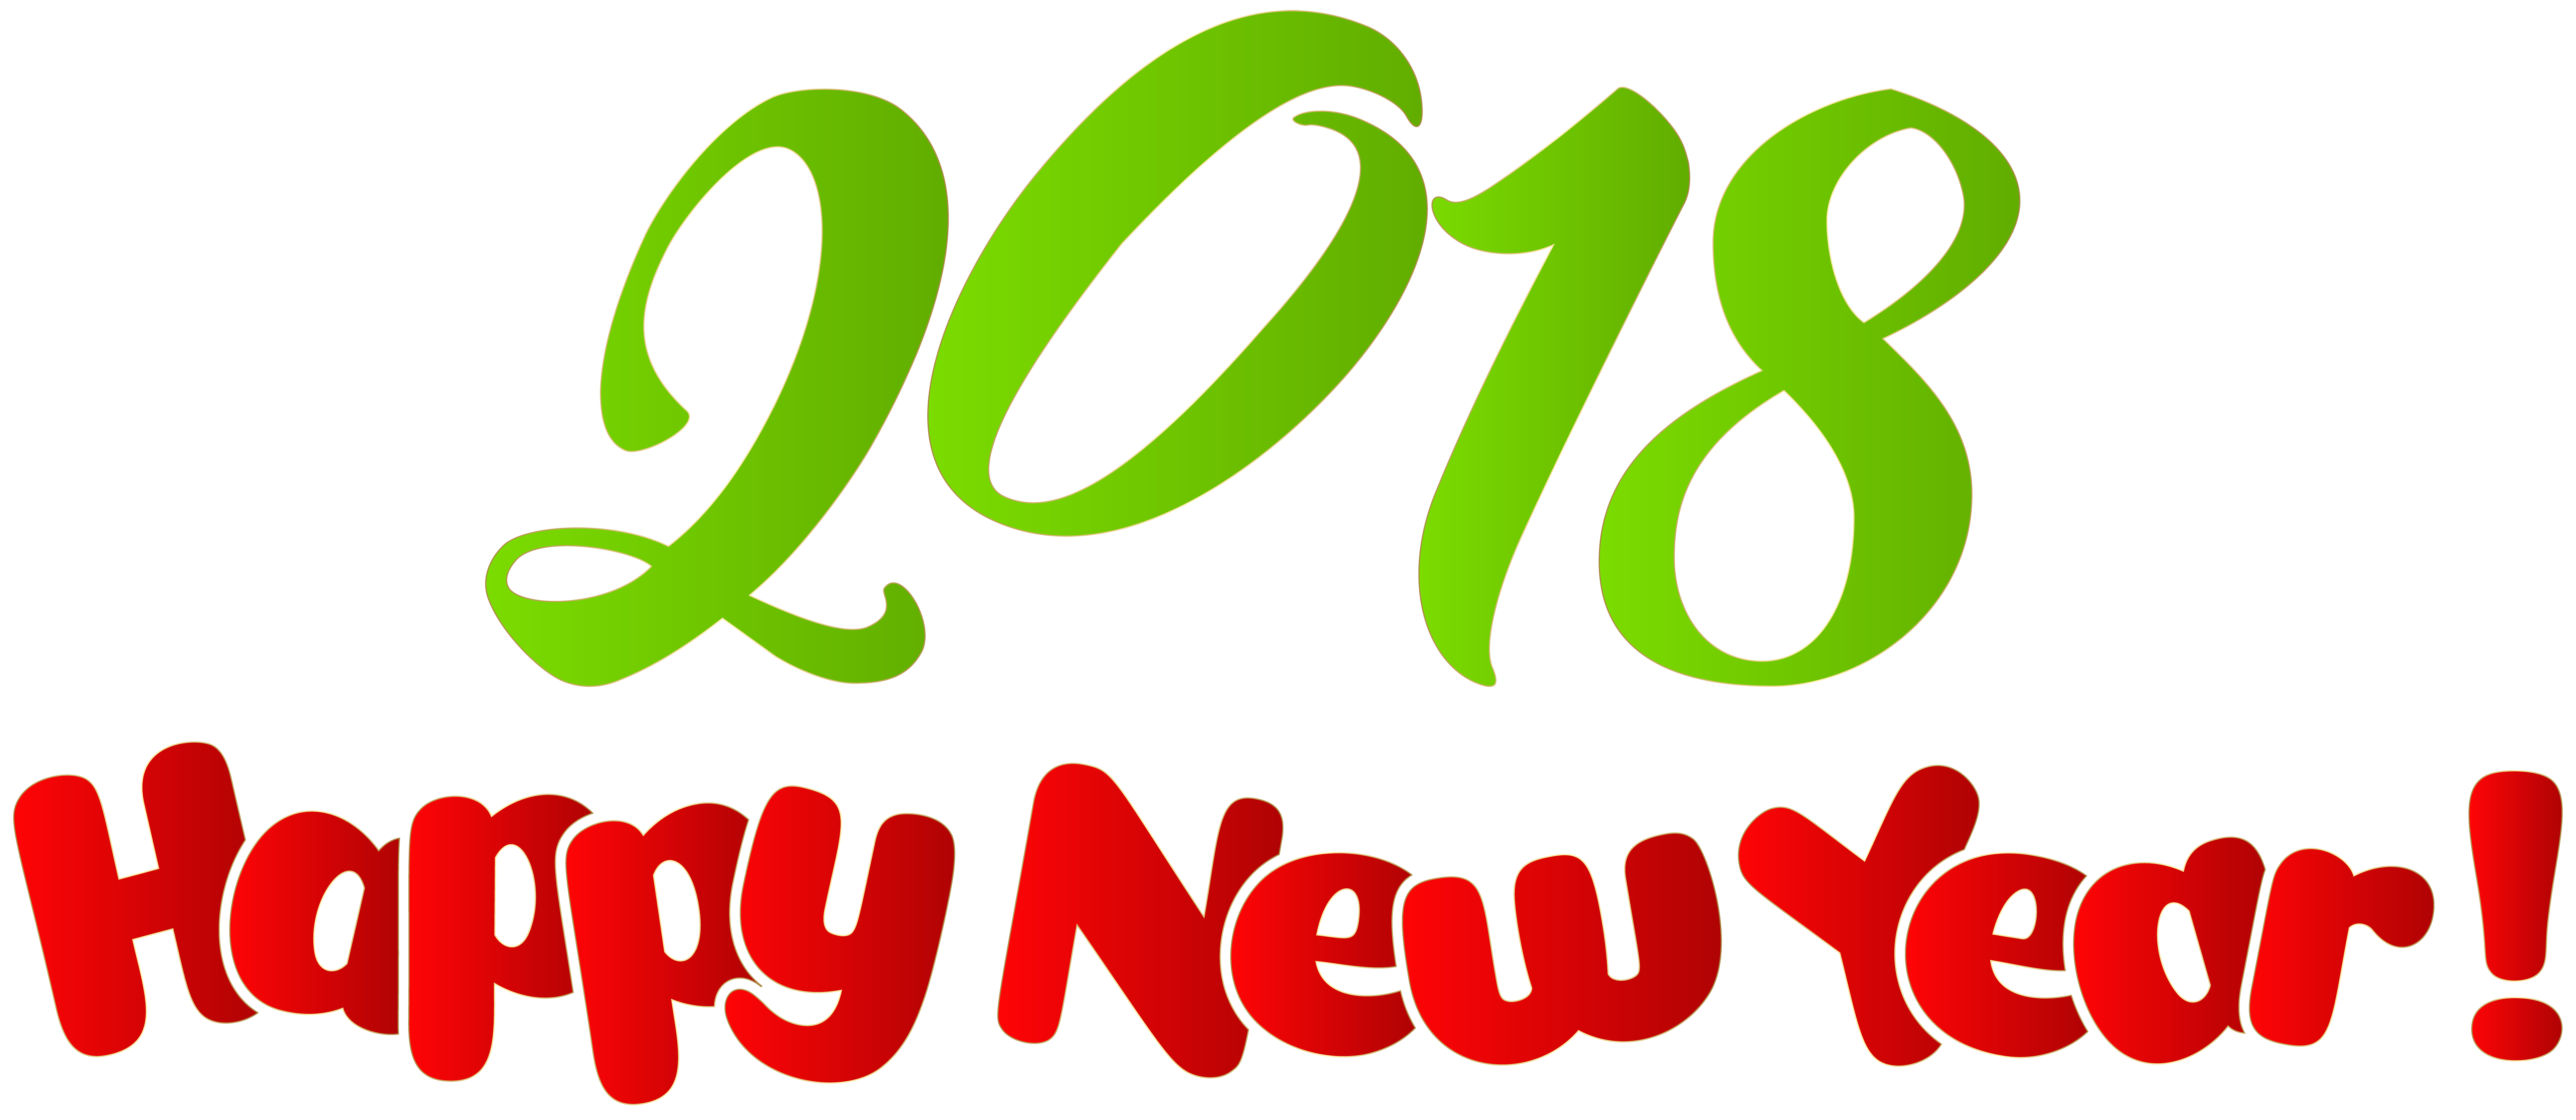 8000x3479 2018 Happy New Year Png Clip Art Imageu200b Gallery Yopriceville